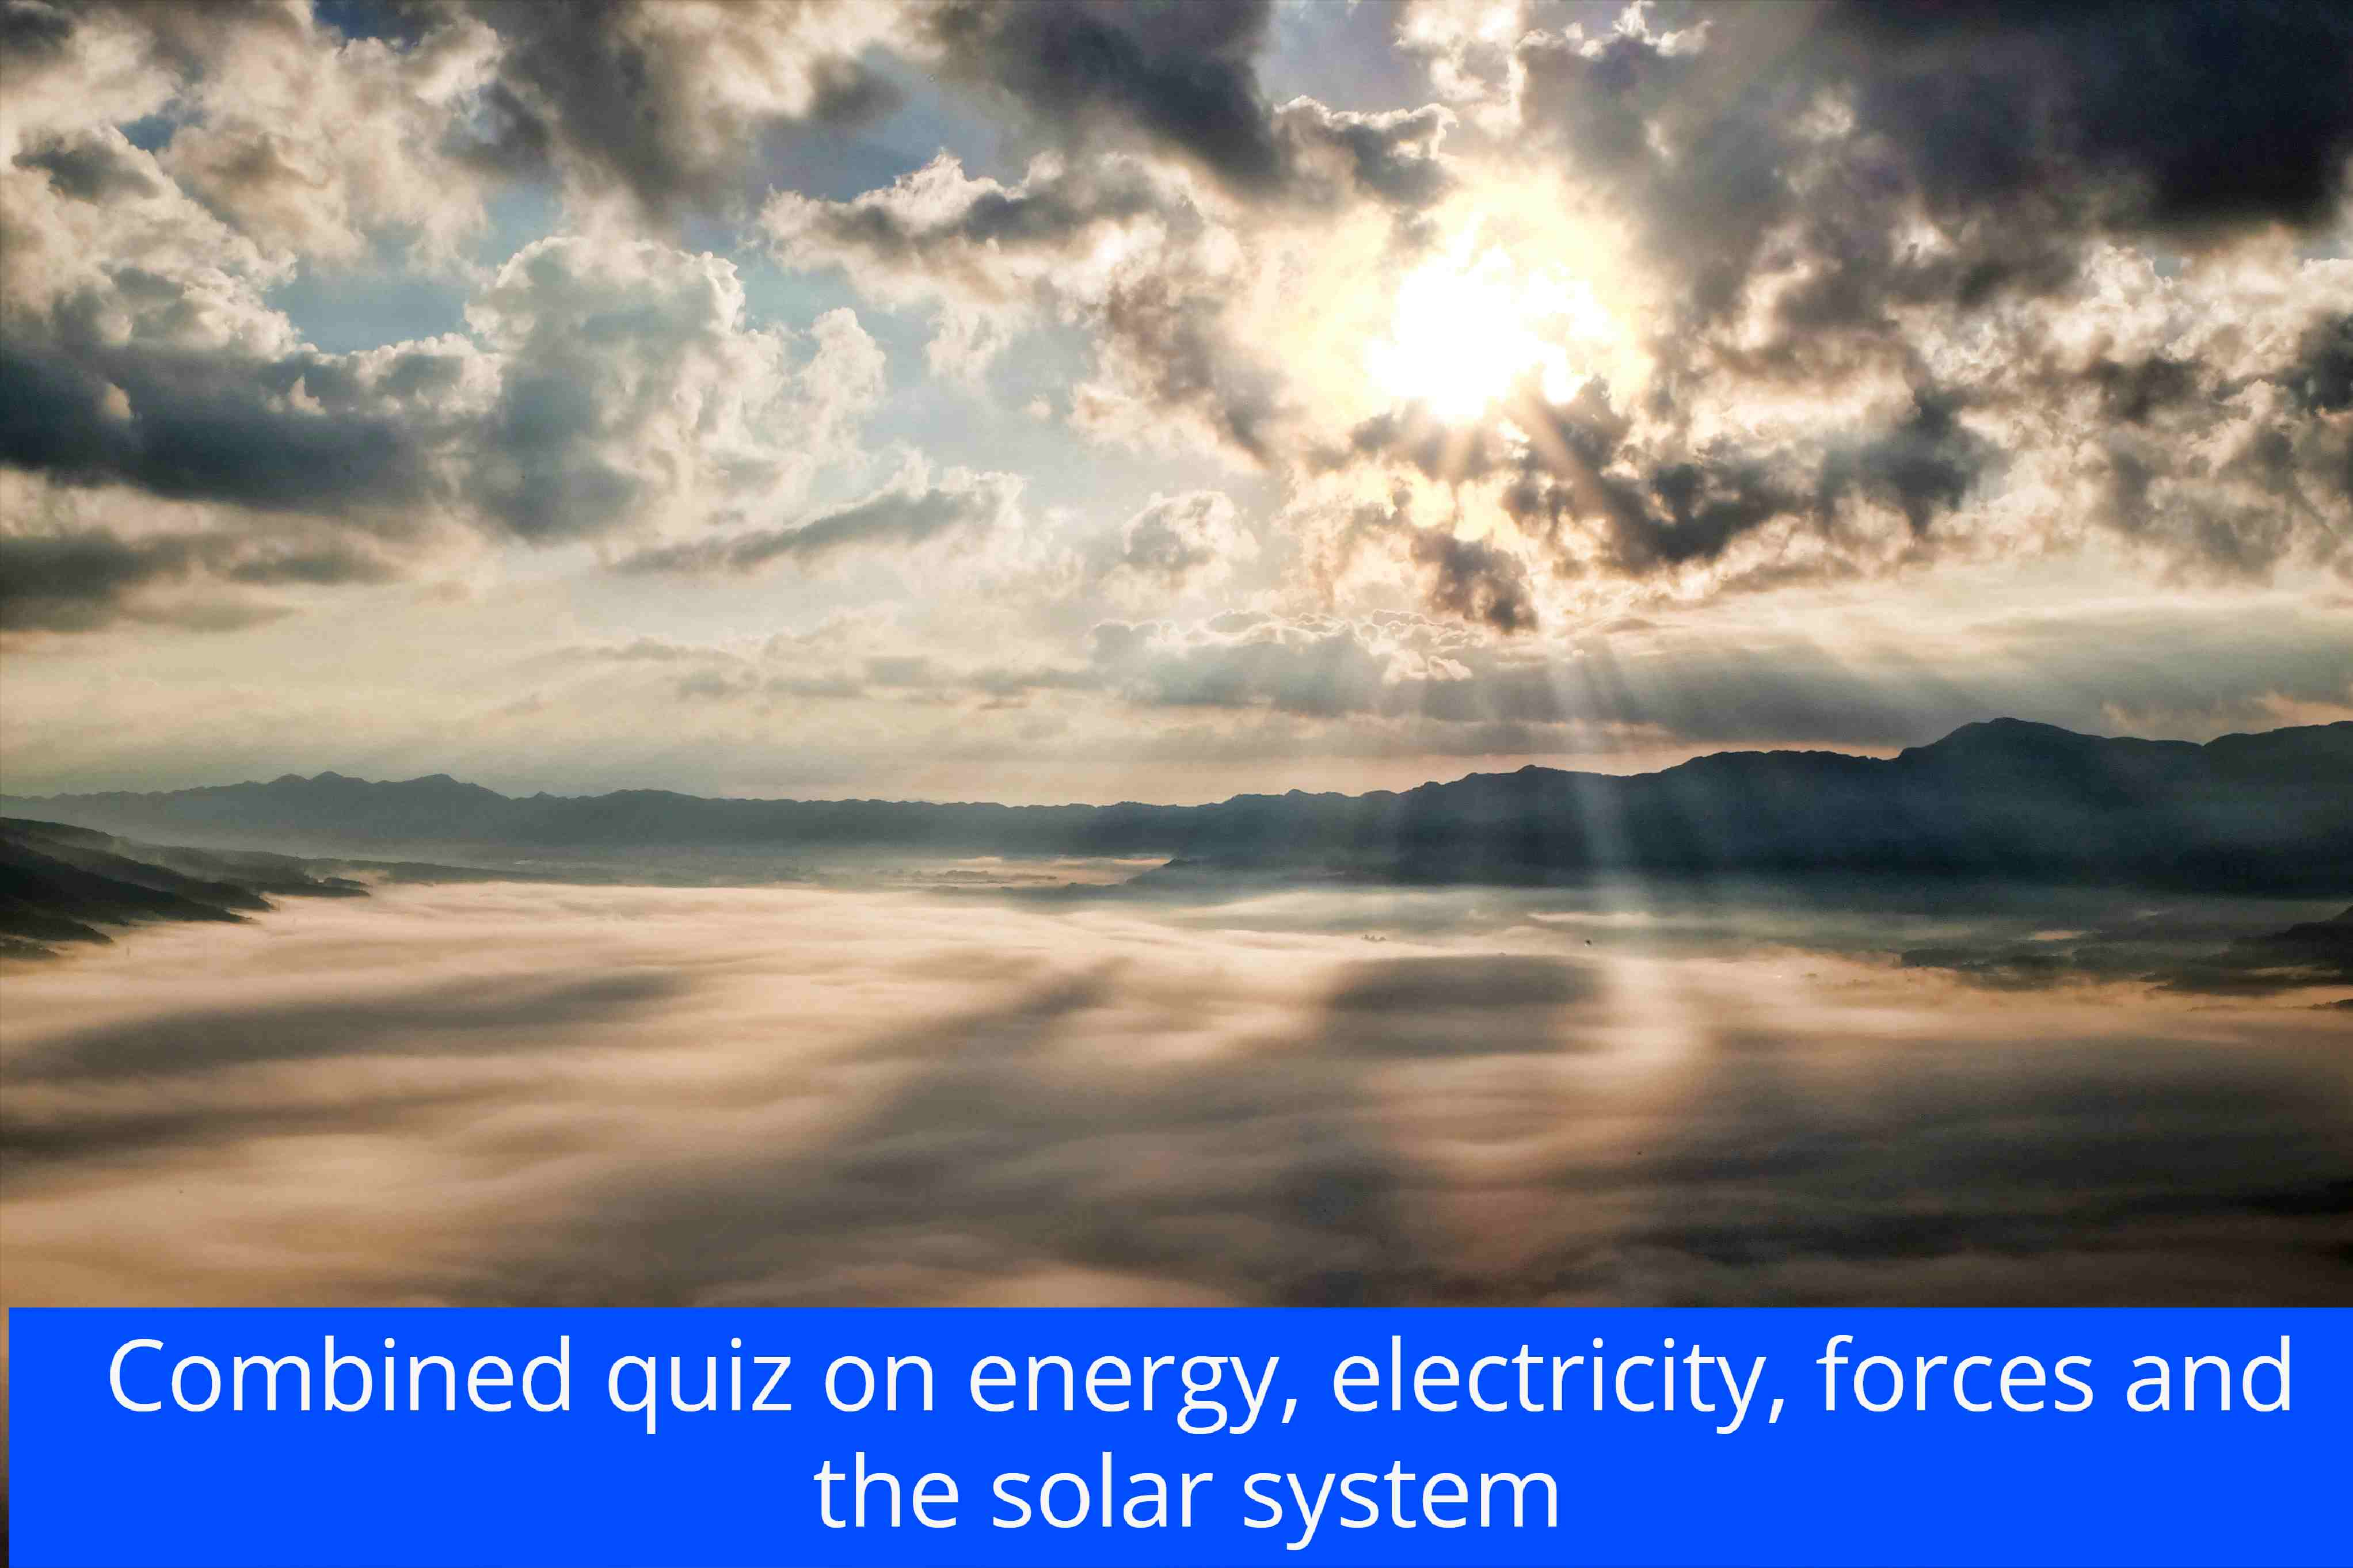 Combined quiz on energy, electricity, forces and the solar system